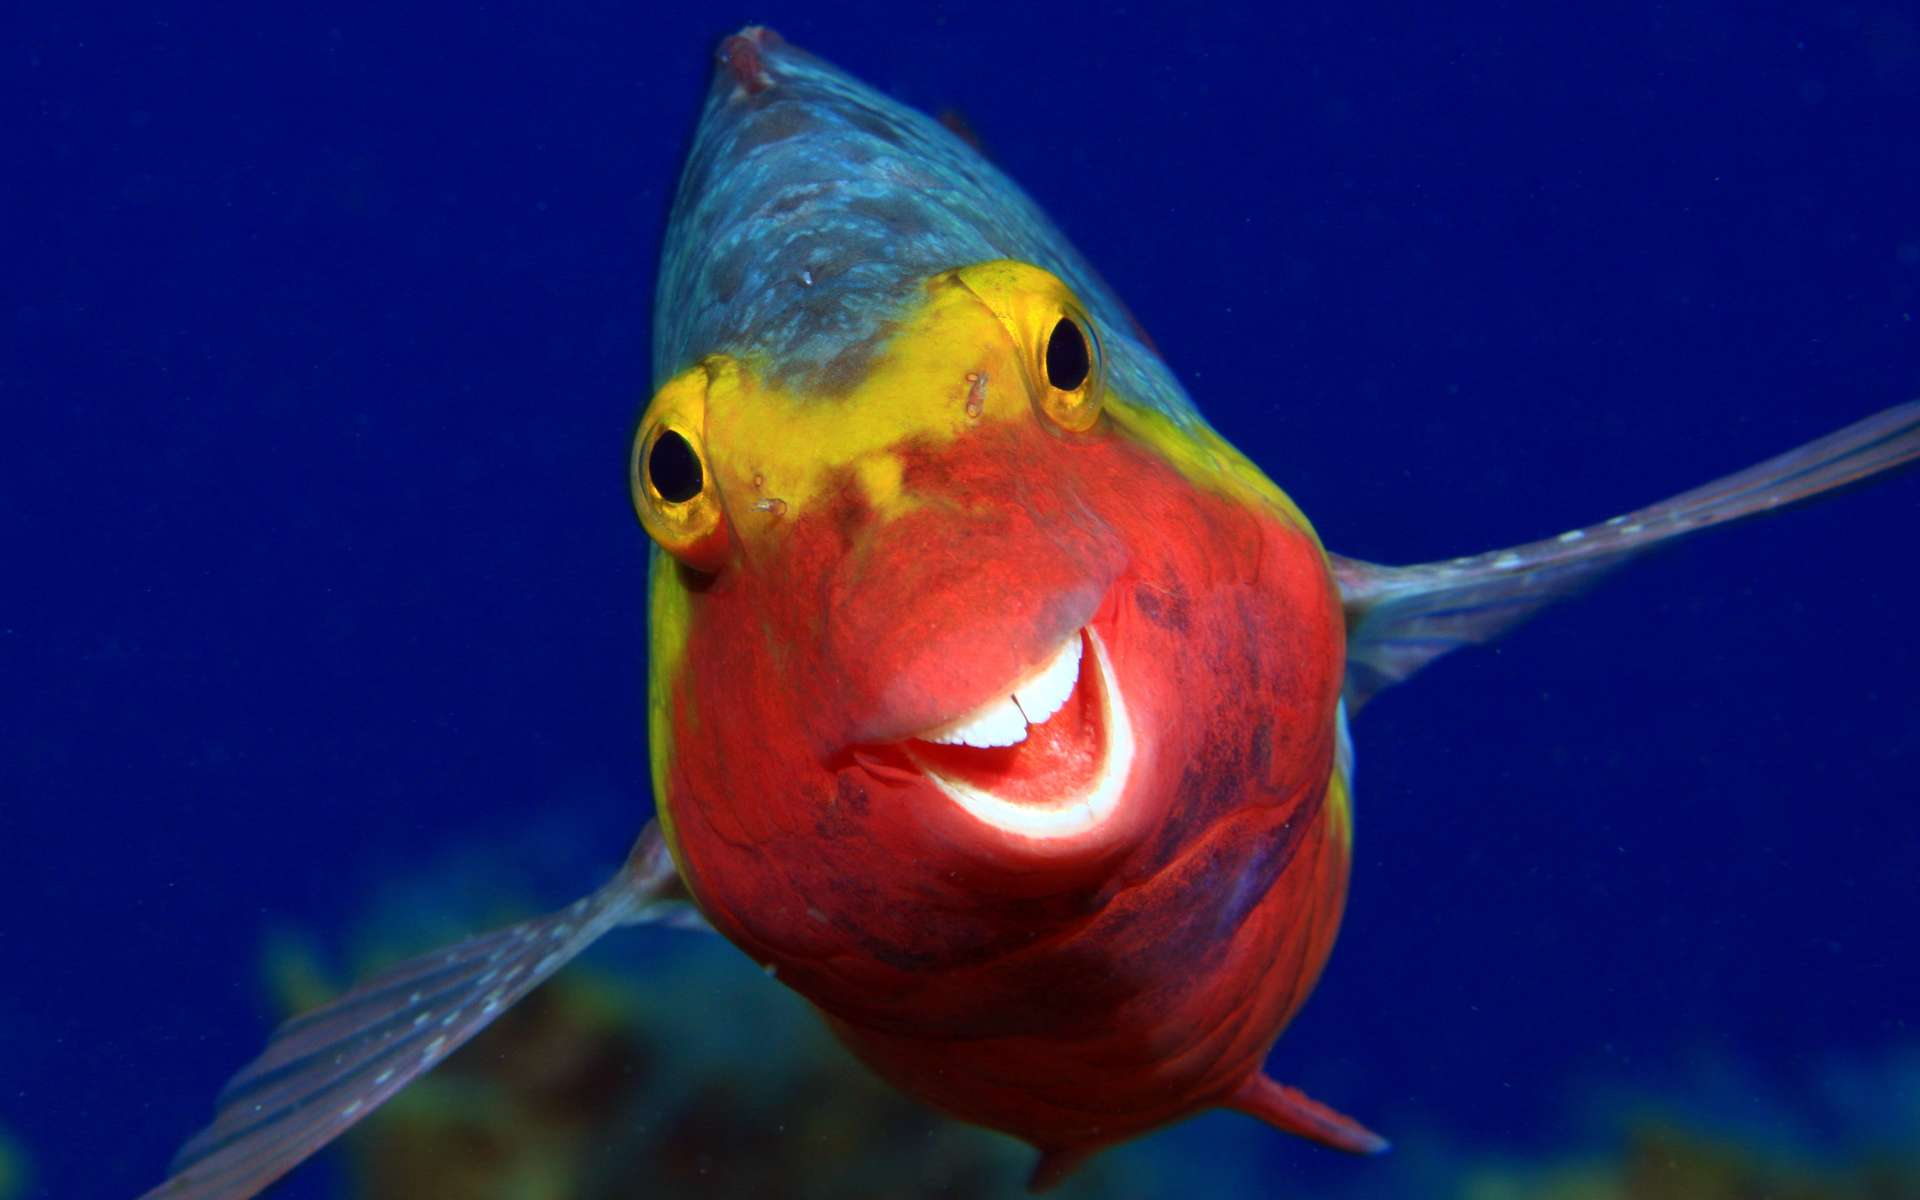 Smiley, photo sélectionnée au Comedy Wildlife Photography Awards 2020 : le sourire du poisson-perroquet. © Arthur Telle Thiemenn, Comedy Wildlife Photography Awards 2020